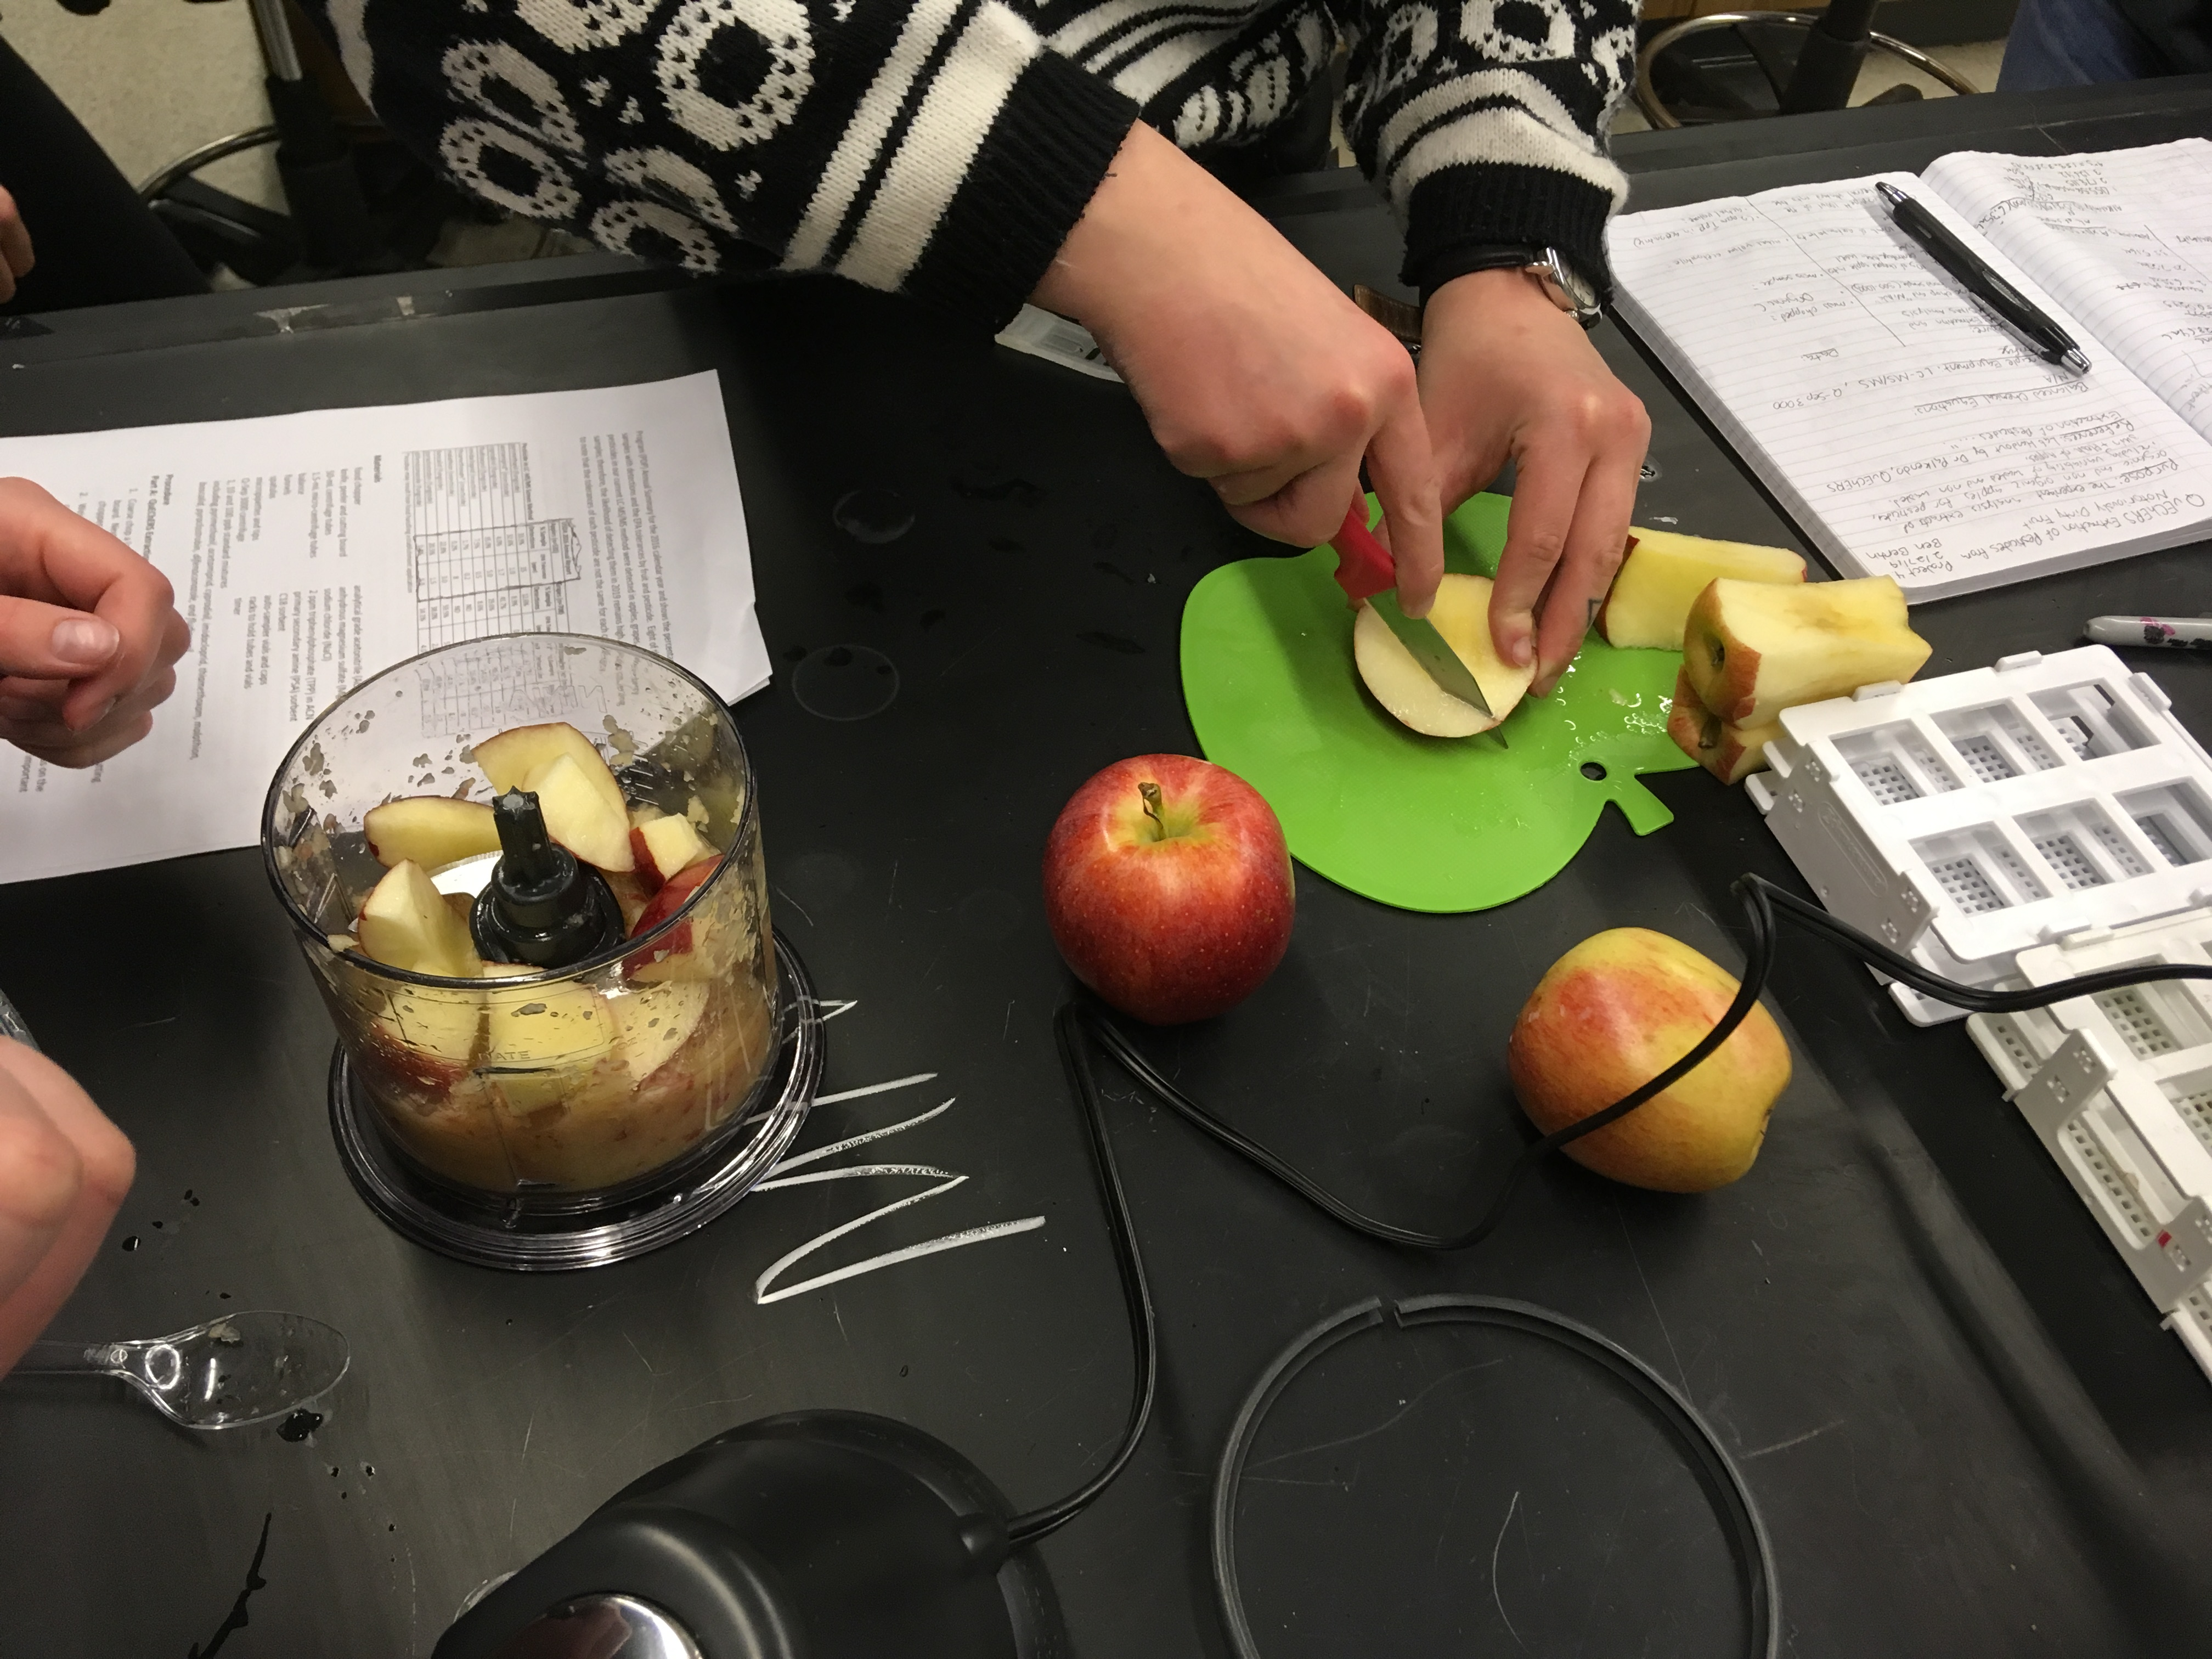 chopping apples and putting into a blender on a lab benchtop